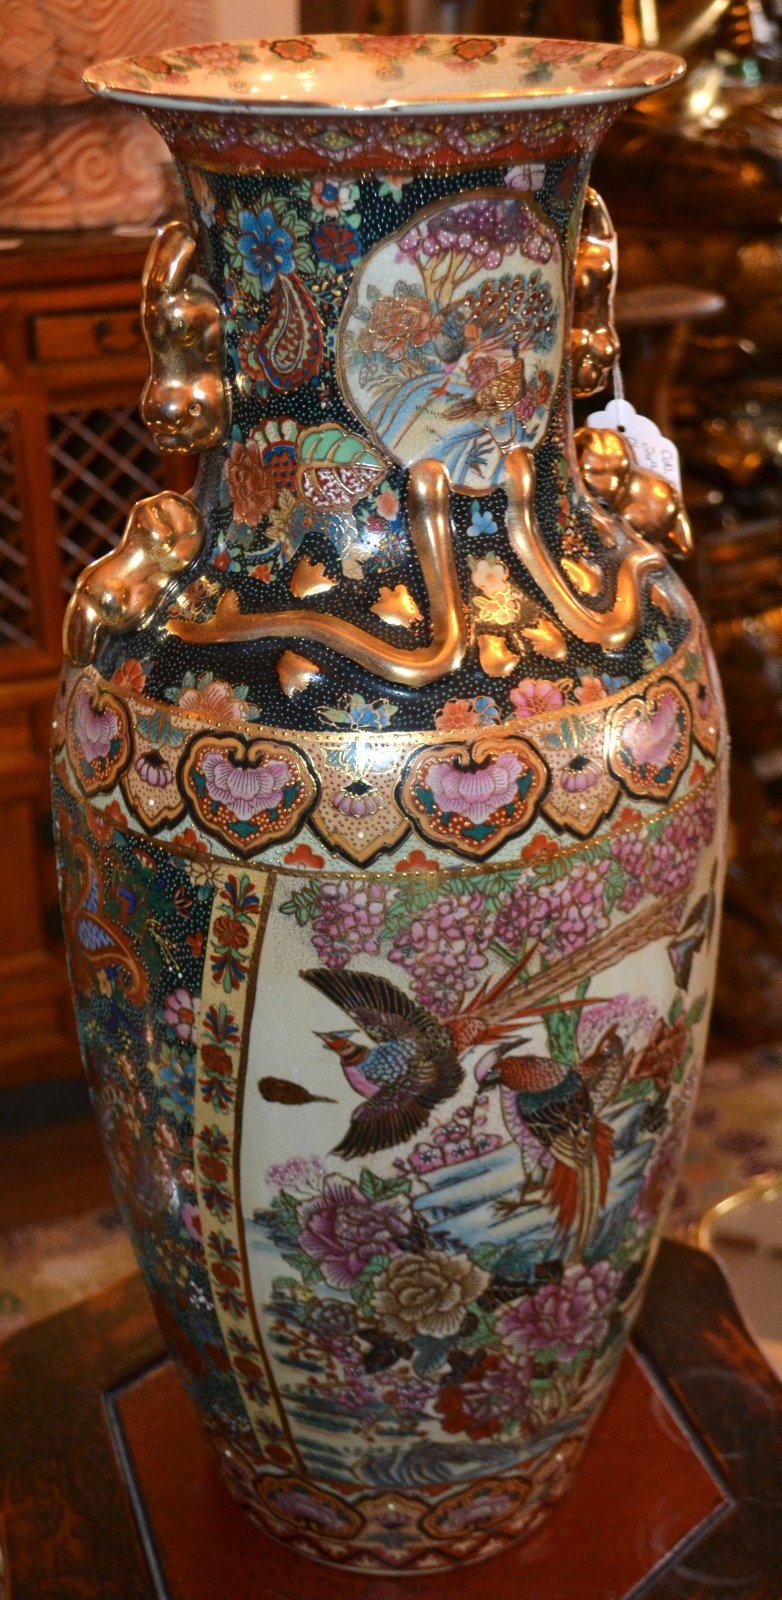 Chinese reproduction of a 19th Century Japanese Vase